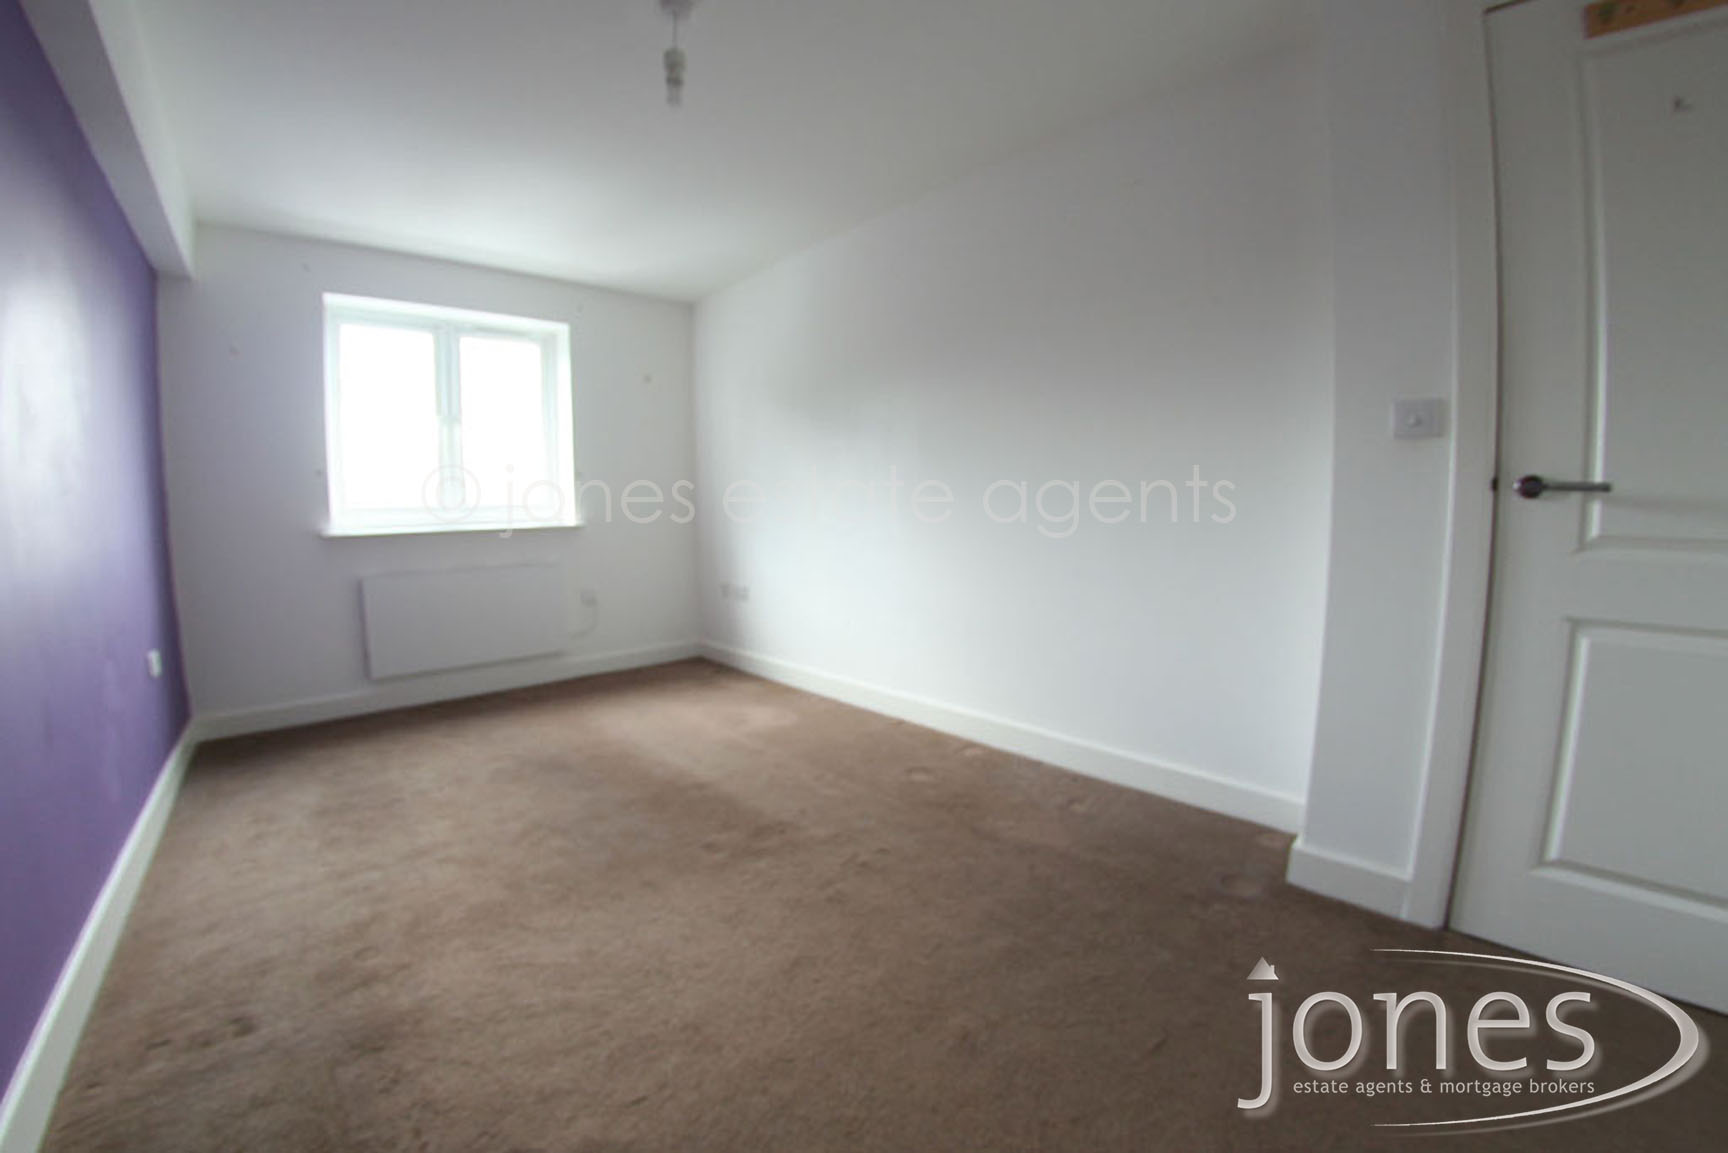 Home for Sale Let - Photo 04 York Apartments, Thornaby, Stockton on Tees,TS17 0AS